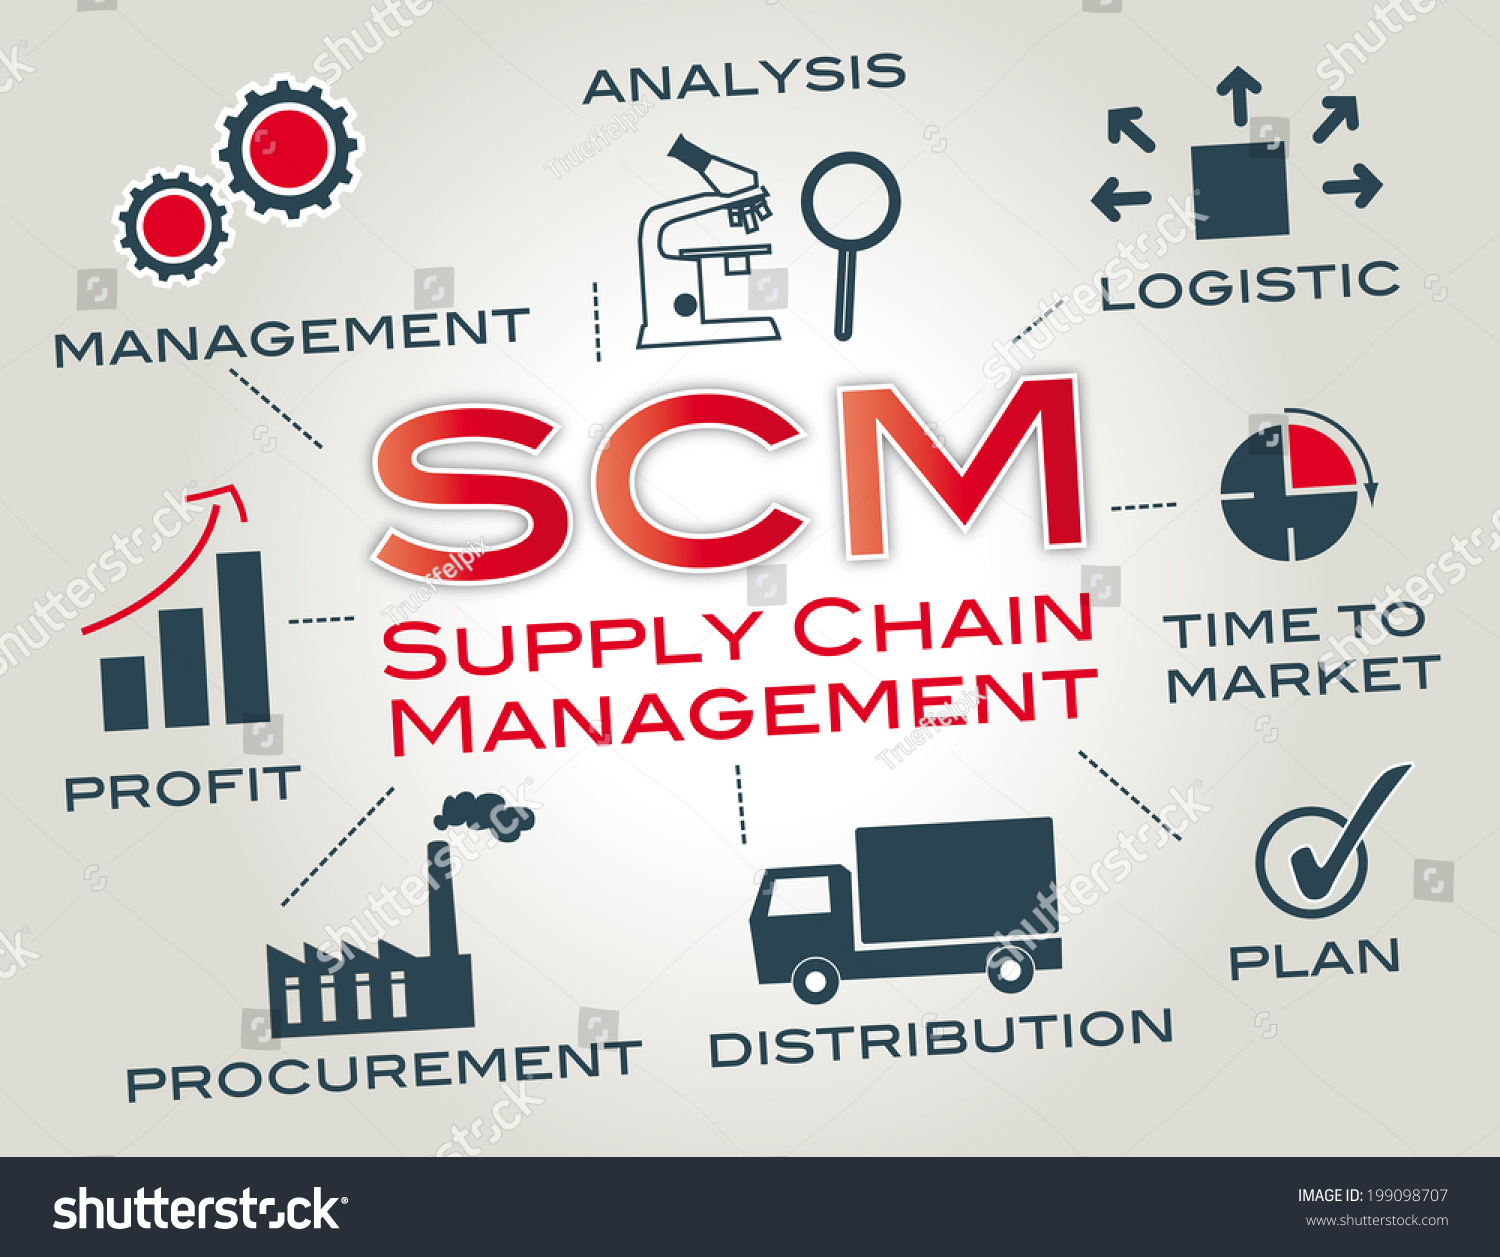 supply chain management of sunsilk 7: through managing a responsive supply chain we maximize value from   powder personal products hair care sunsilk shampoo (4.